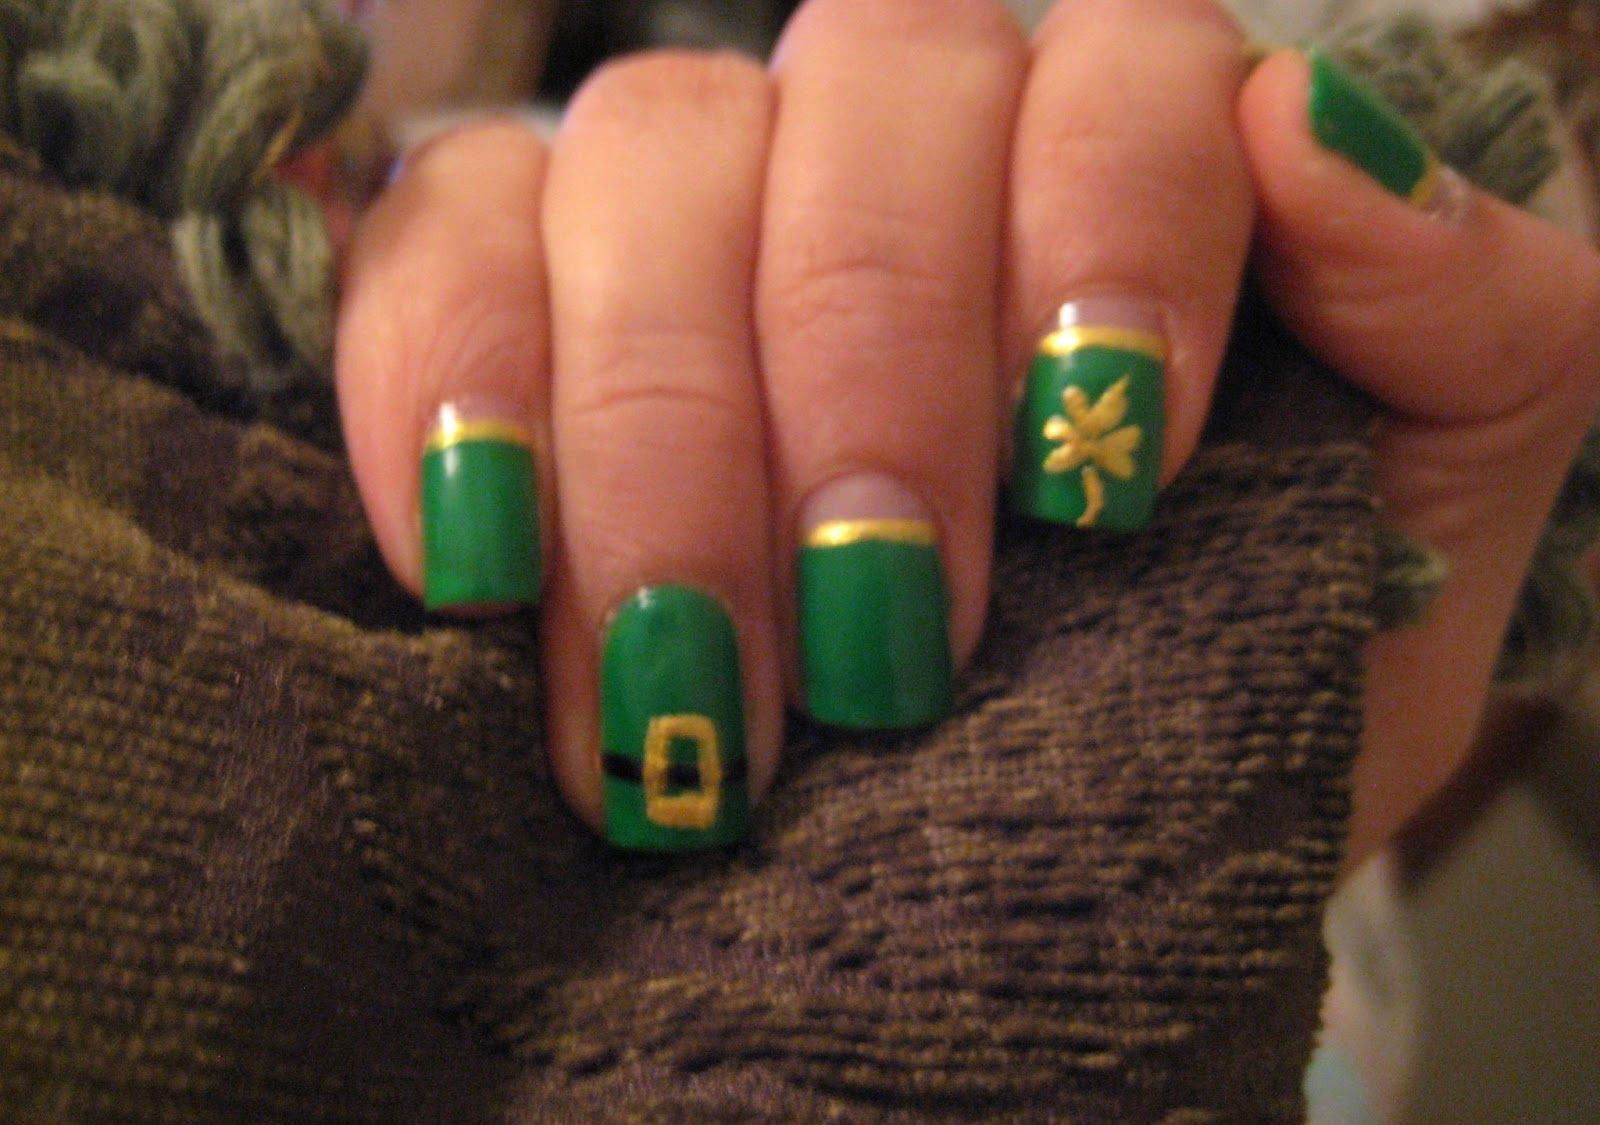 st patricks day nail art | patrick s day spirit with these simple st ...